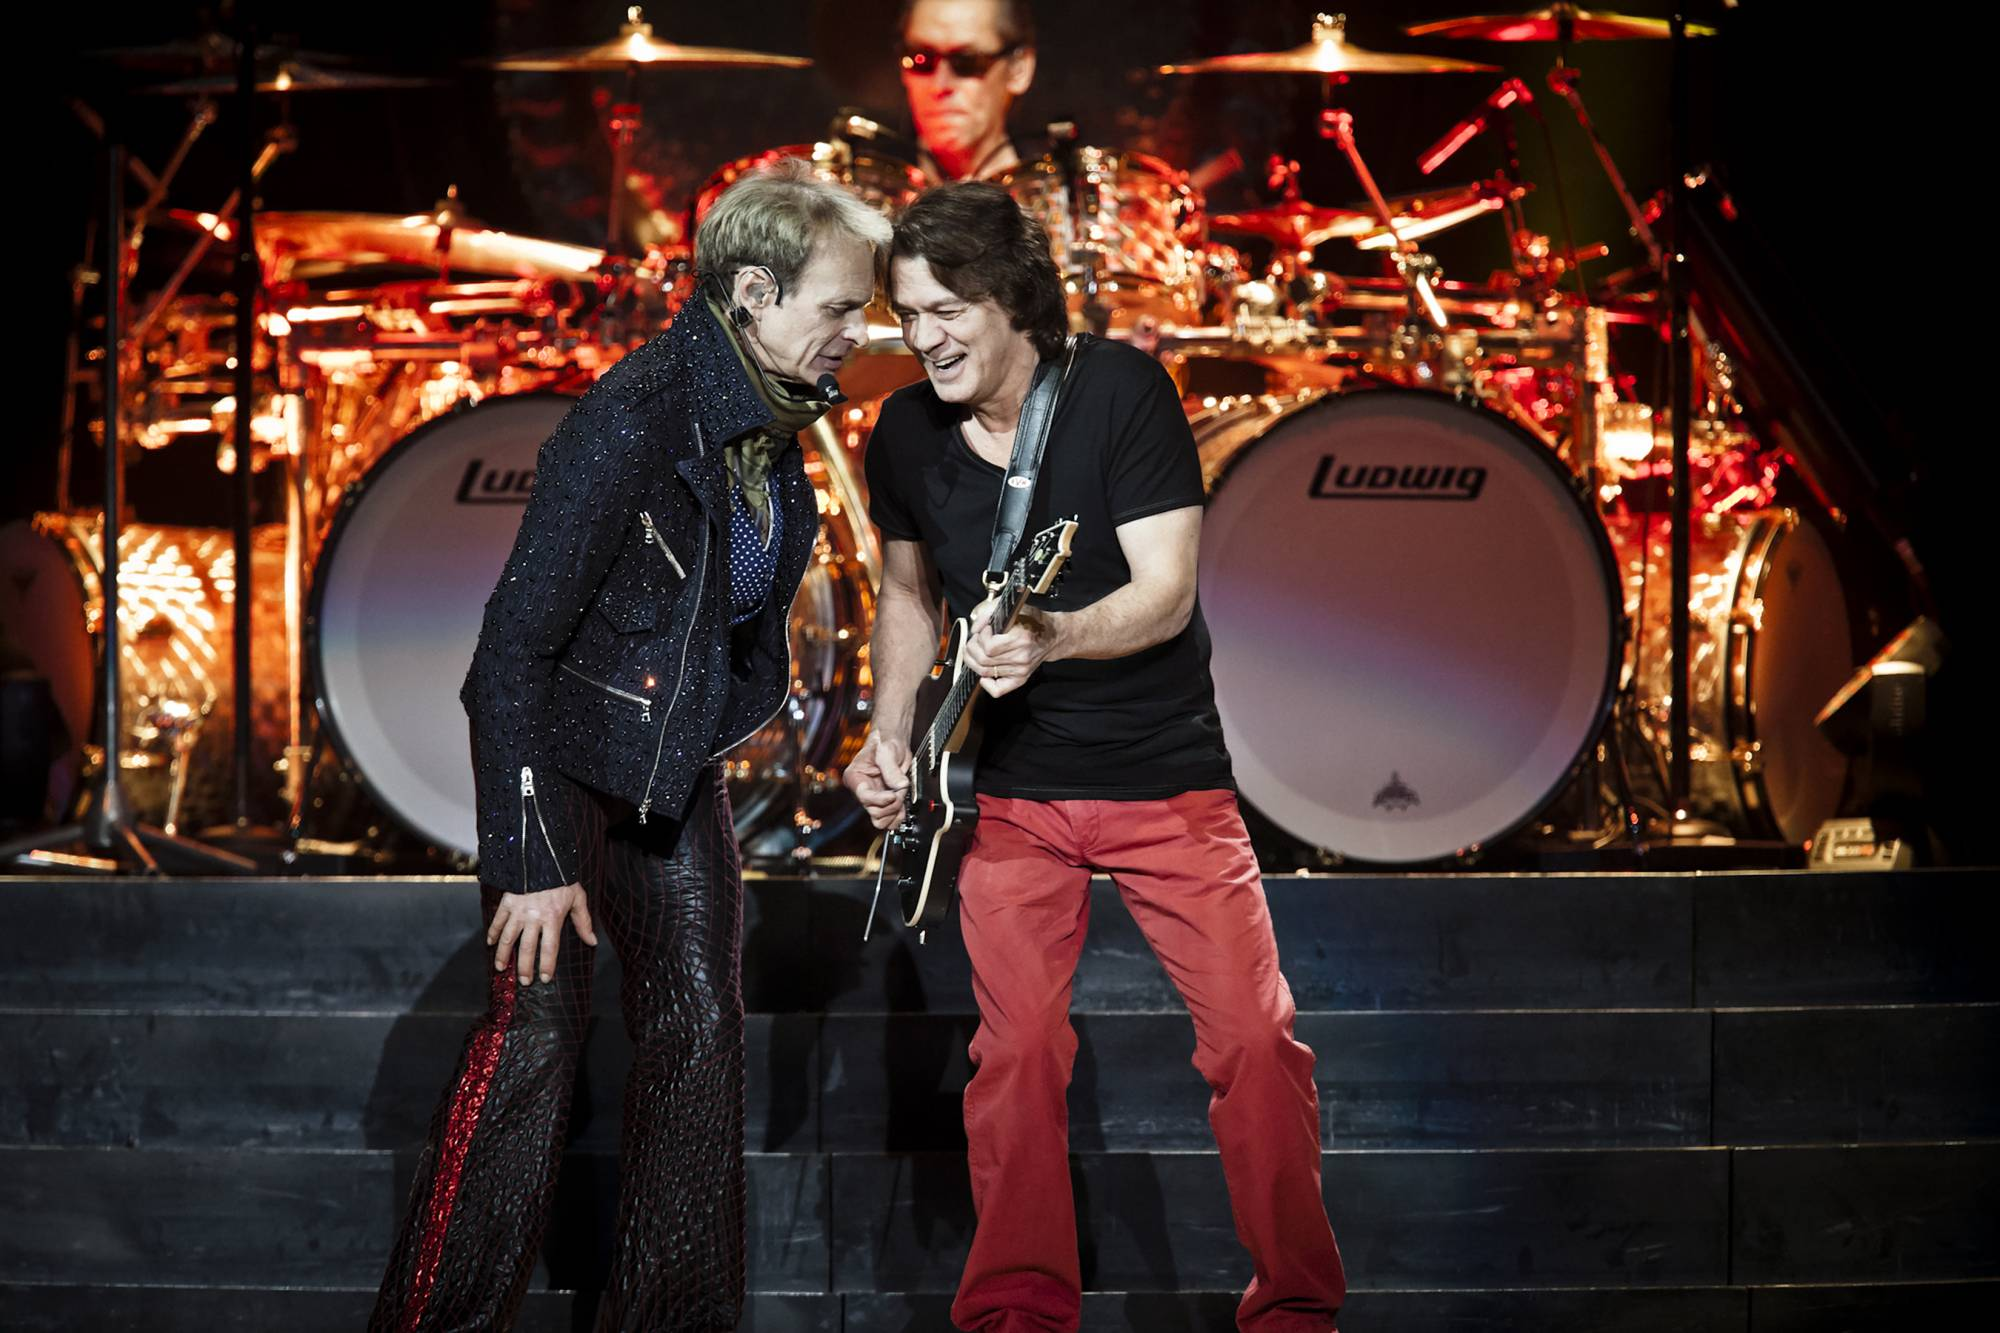 David Lee Roth (left), formerly of the band Van Halen, and Eddie Van Halen perform at Madison Square Garden in 2012. | CHAD BATKA / THE NEW YORK TIMES